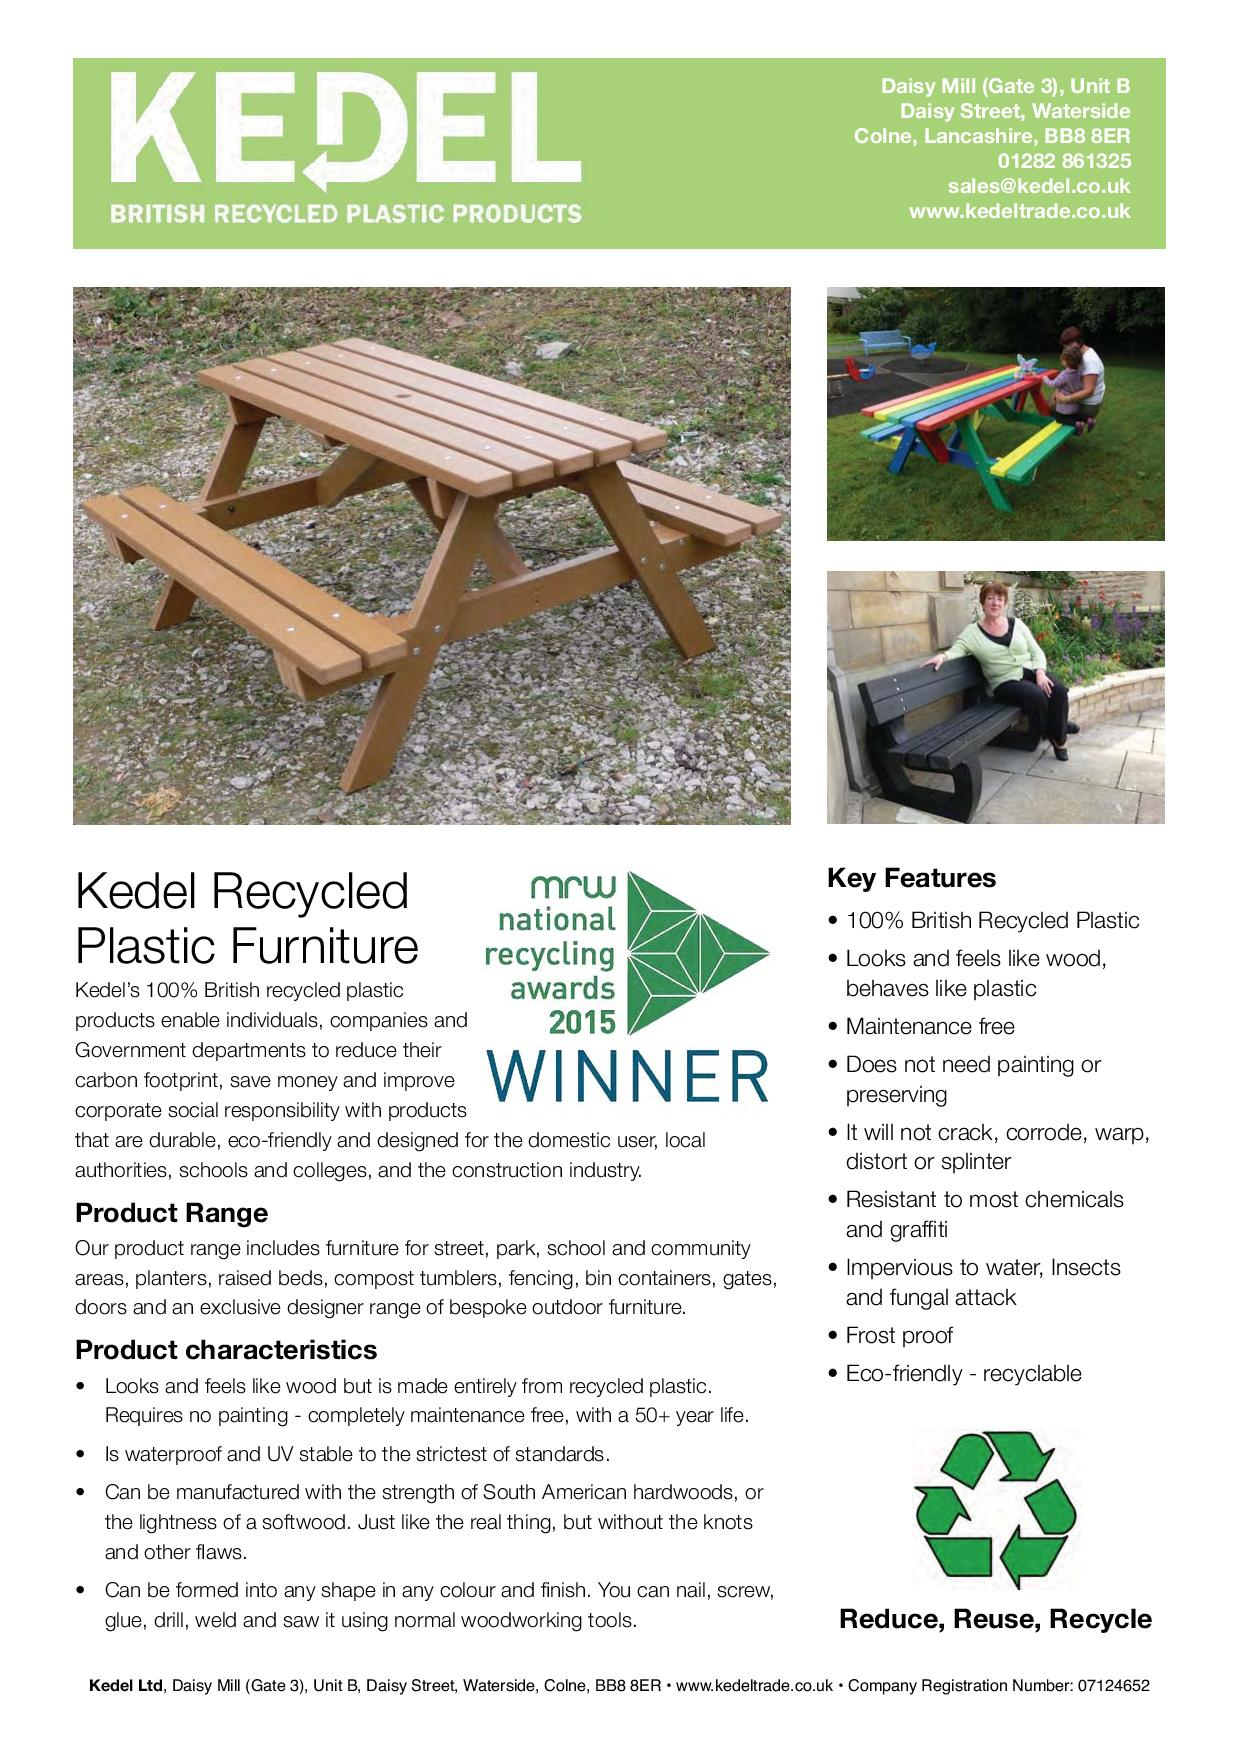 Recycled Plastic Furniture - Key Features Leaflet